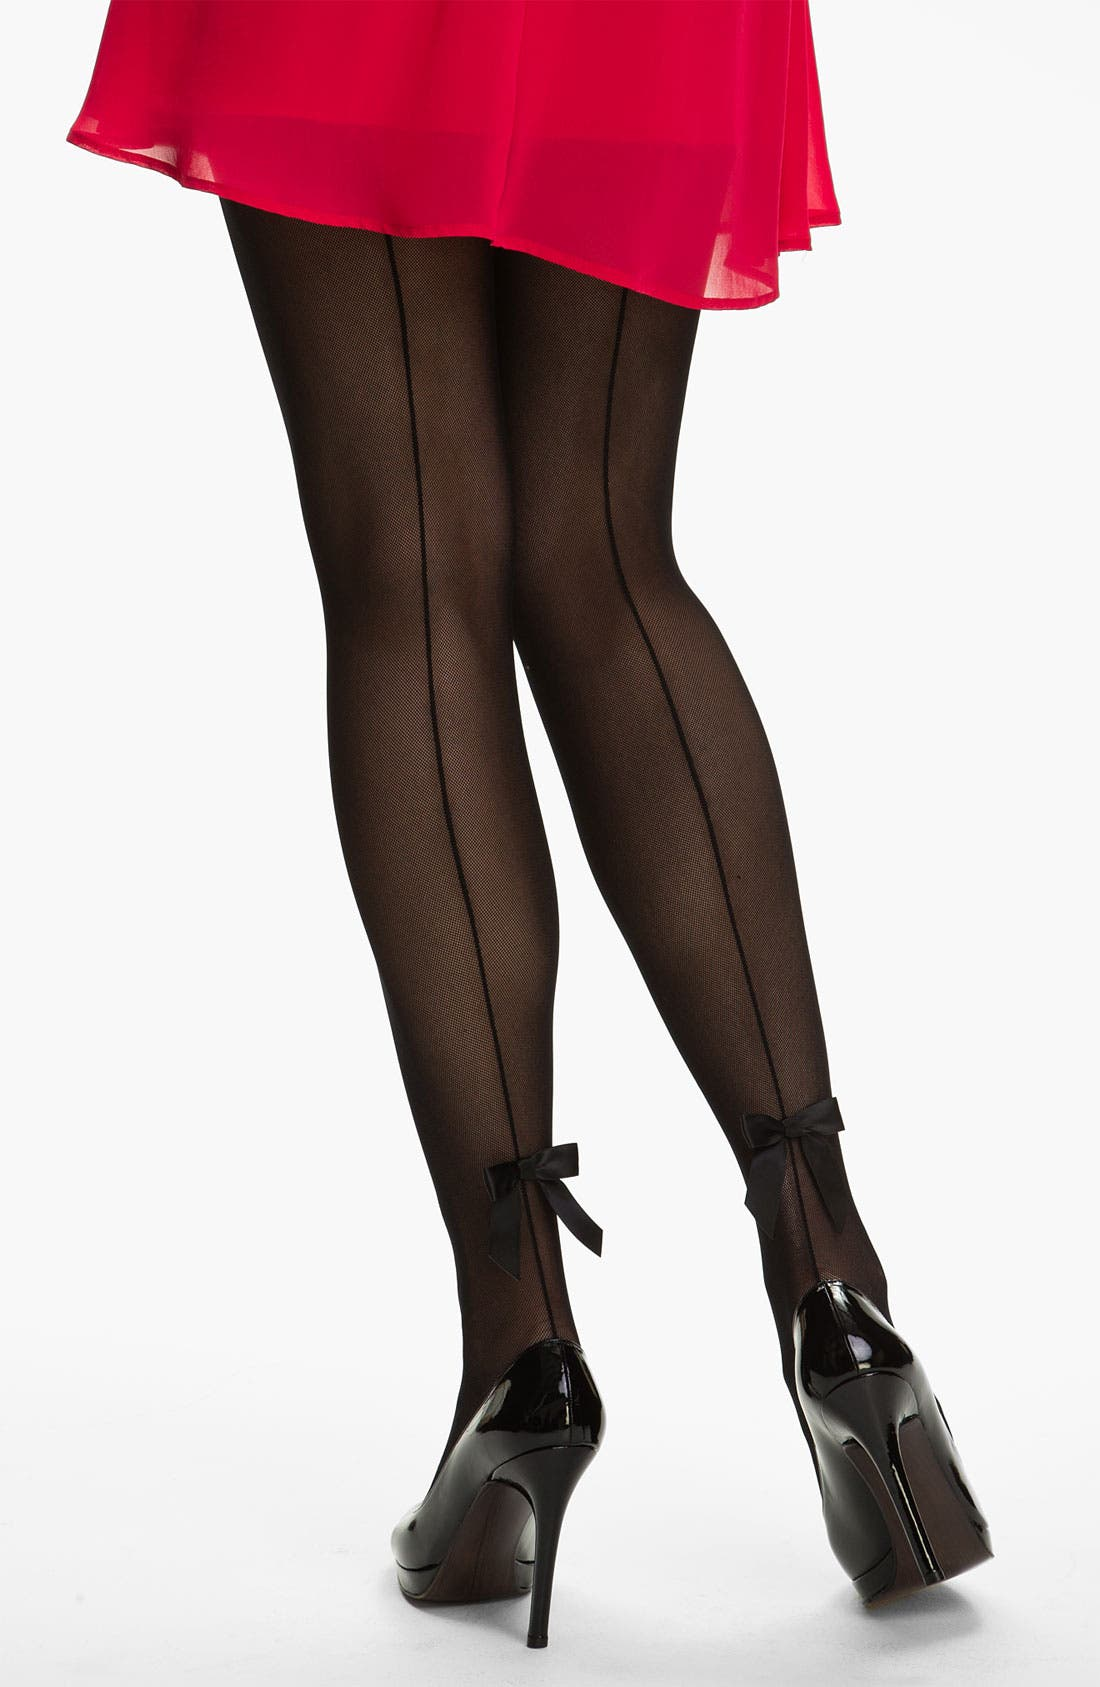 Alternate Image 1 Selected - Pretty Polly Back Seam & Bow Tights (Nordstrom Exclusive)